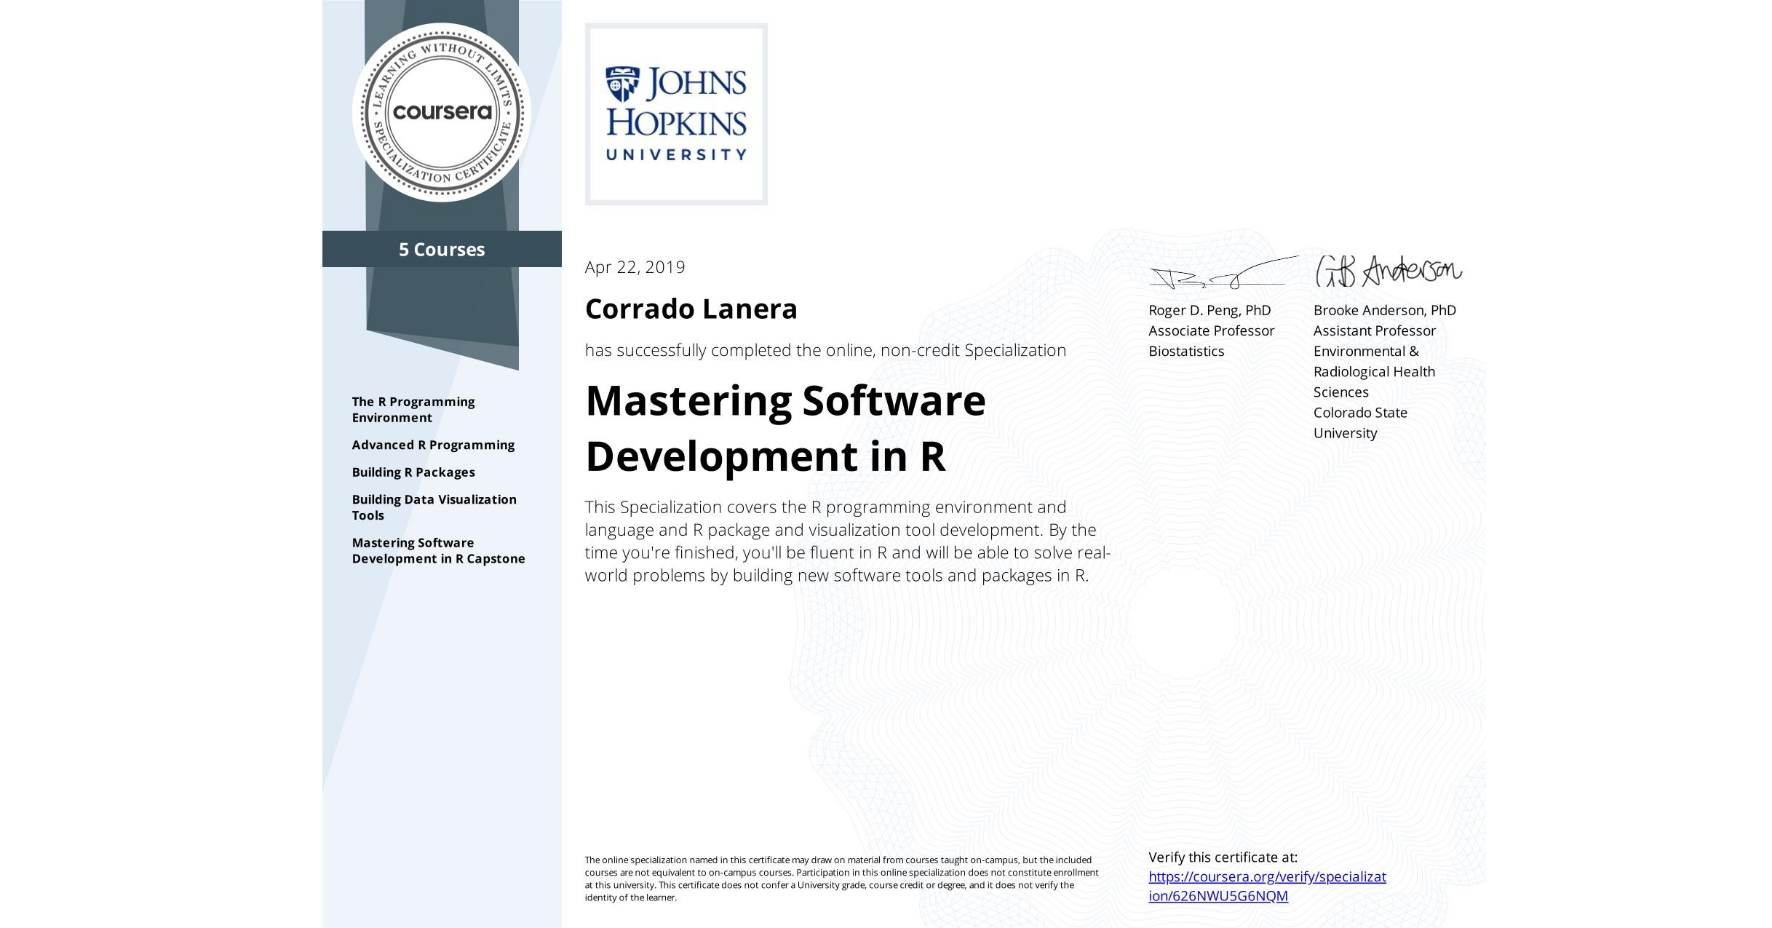 View certificate for Corrado Lanera, Mastering Software Development in R, offered through Coursera. This Specialization covers the R programming environment and language and R package and visualization tool development. By the time you're finished, you'll be fluent in R and will be able to solve real-world problems by building new software tools and packages in R.